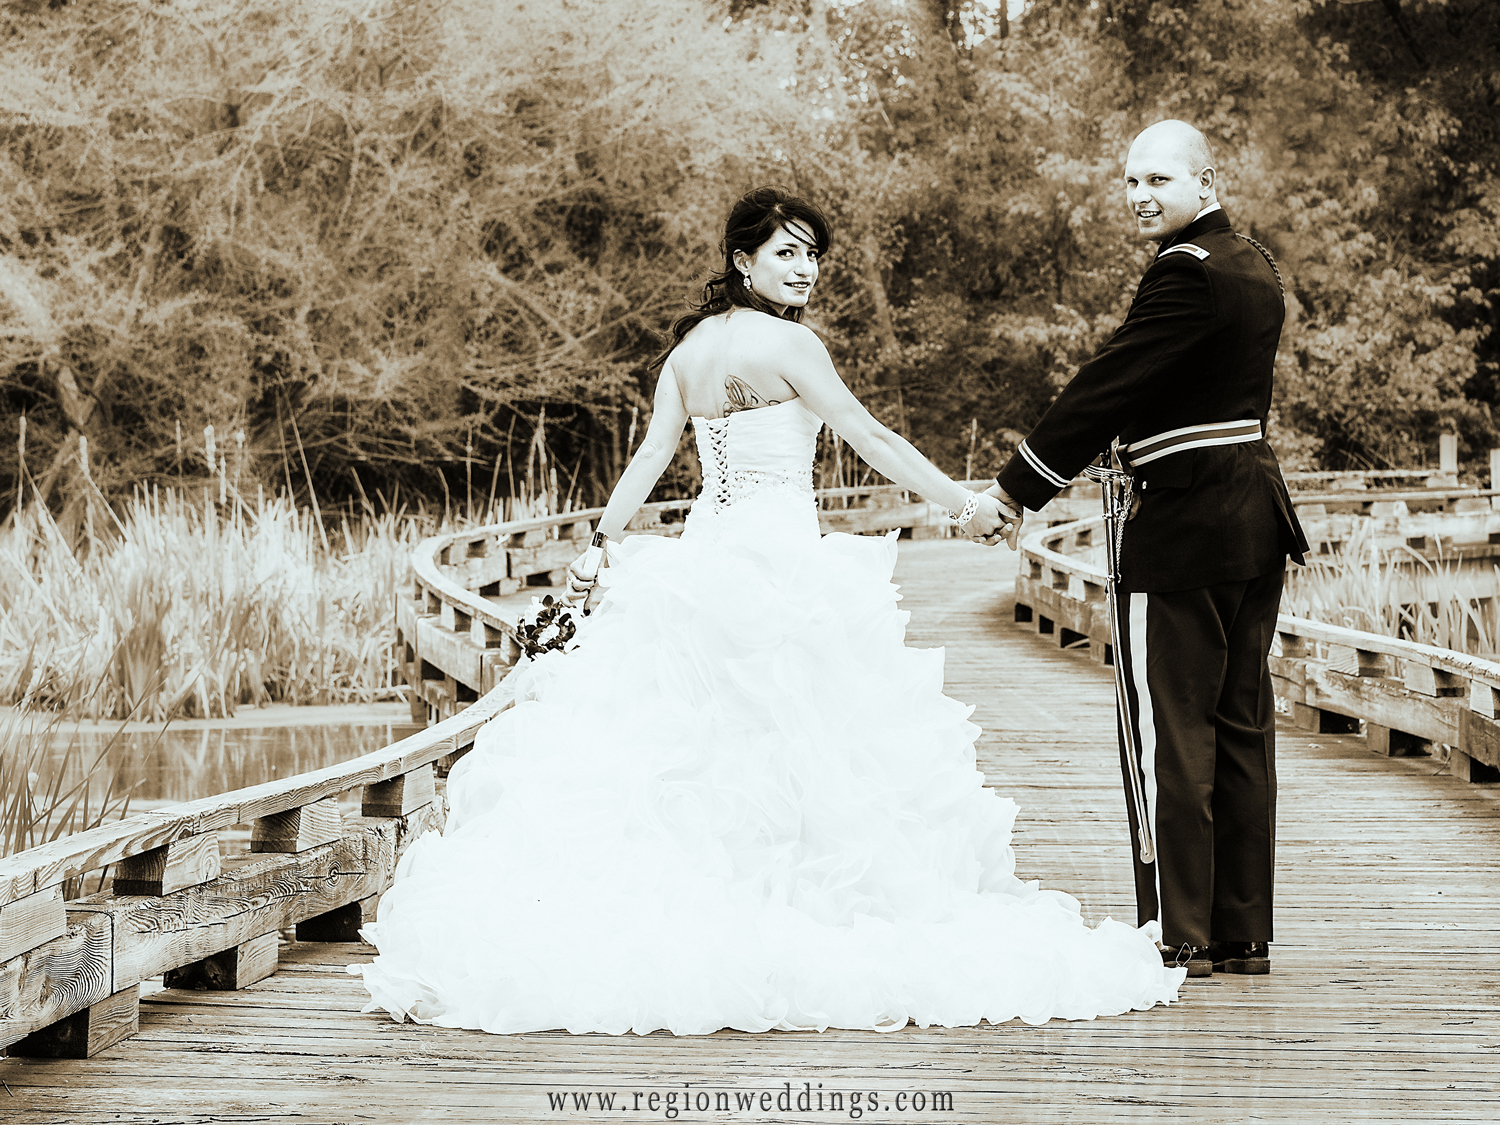 The newly married couple takes a stroll across the bridge at White Hawk Country Club in Crown Point.